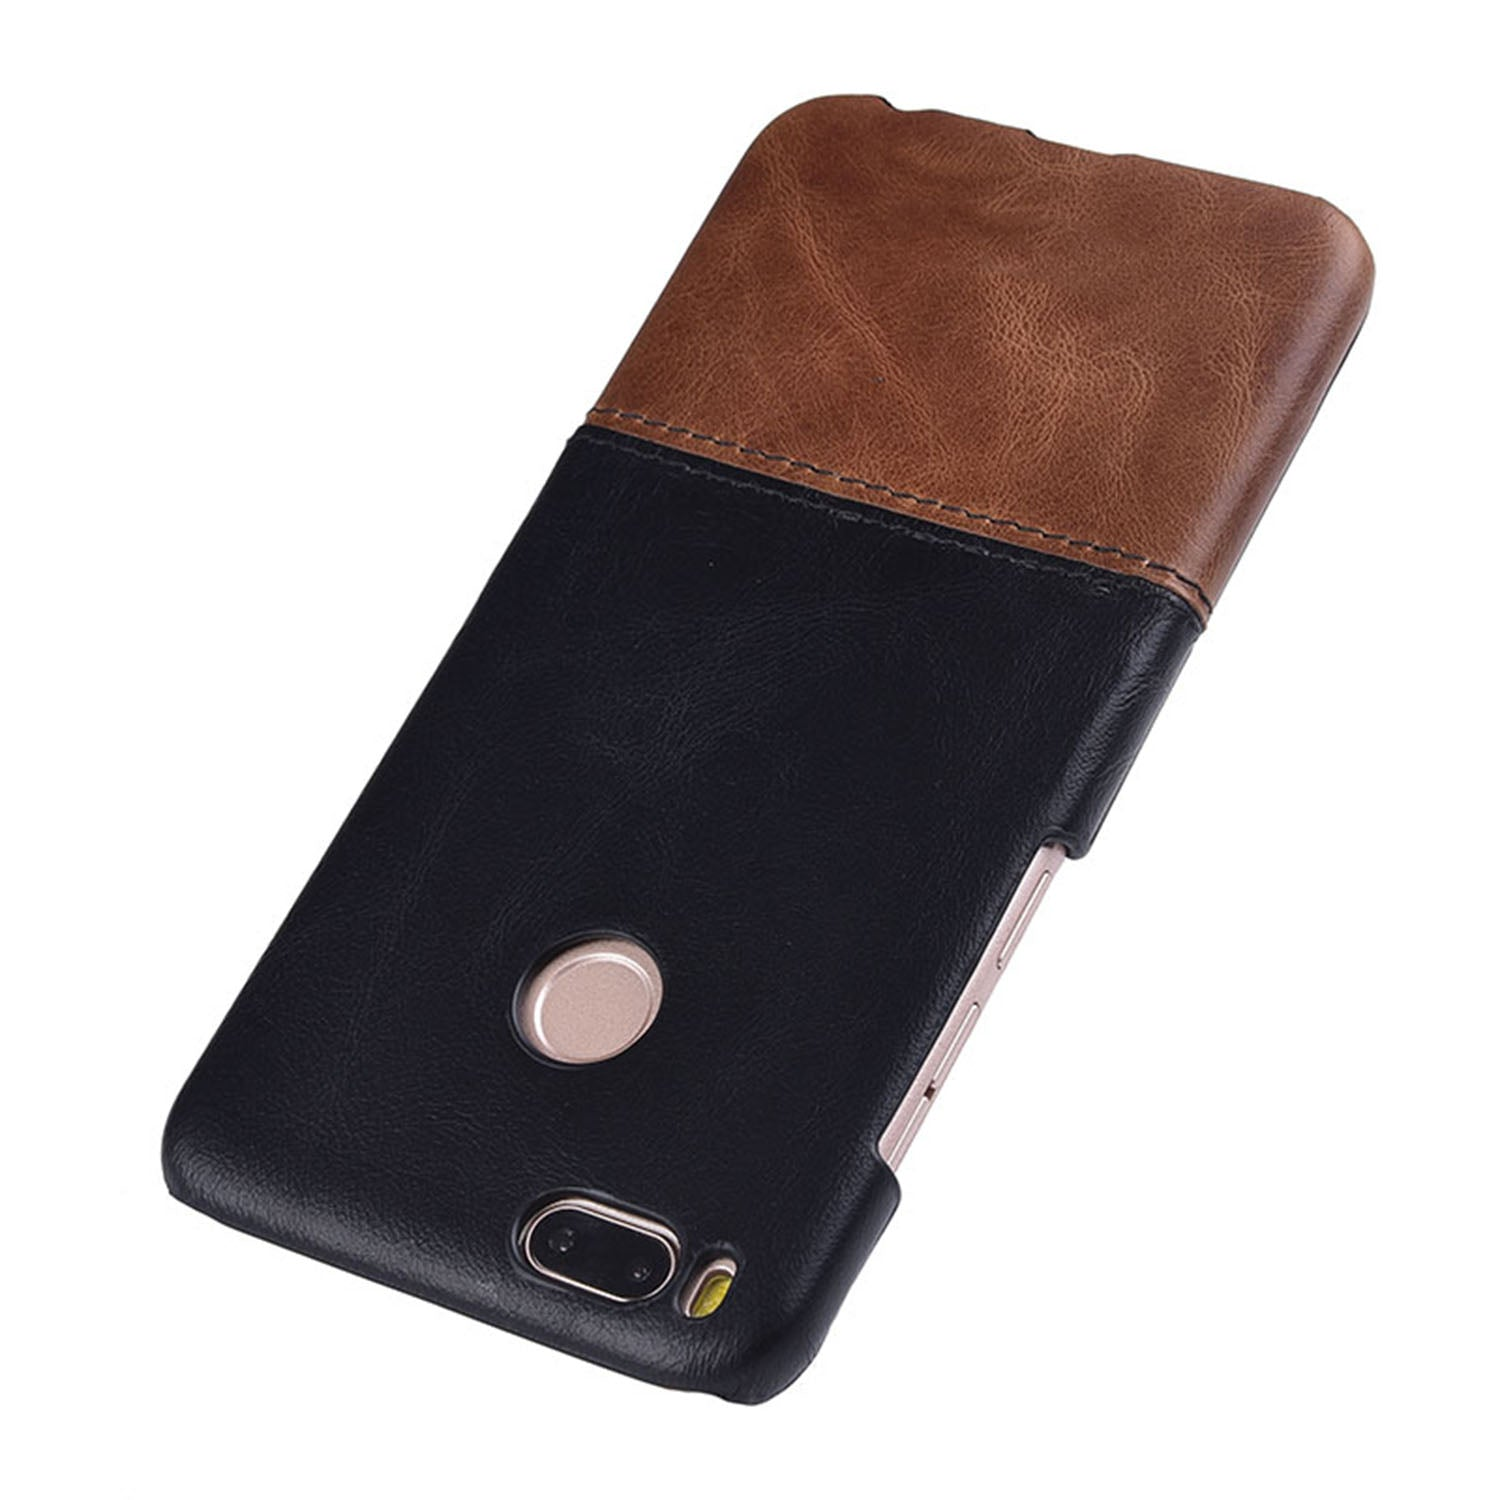 Genuine Leather Dual Color Premium Protective Case Cover for Xiaomi Mi A1 - Black , Brown - Mobizang